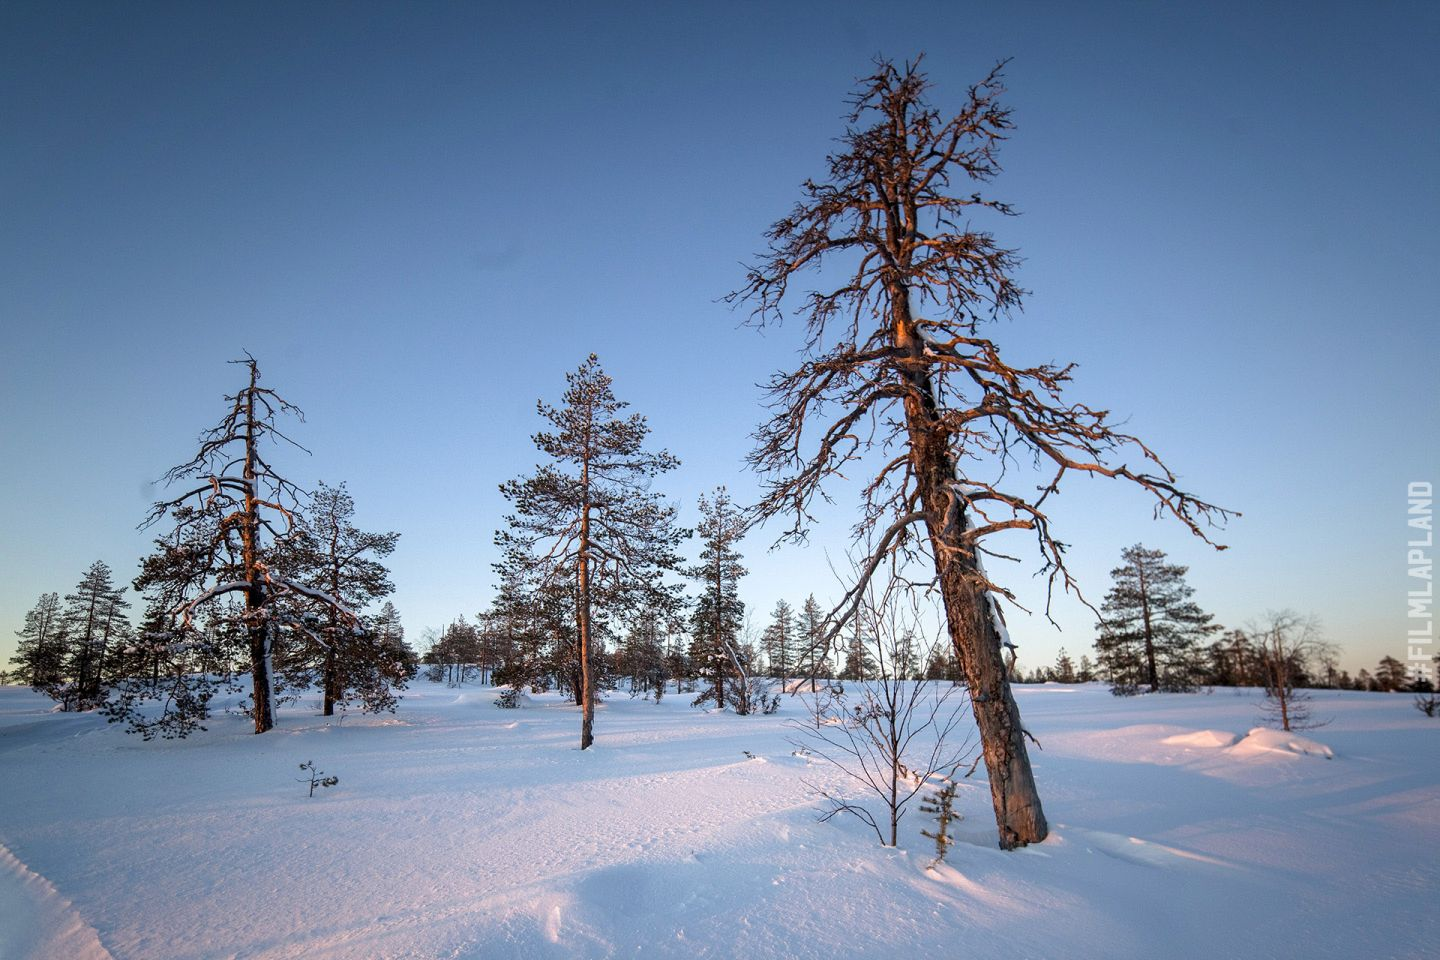 Old pine trees poke up from the snowfall in